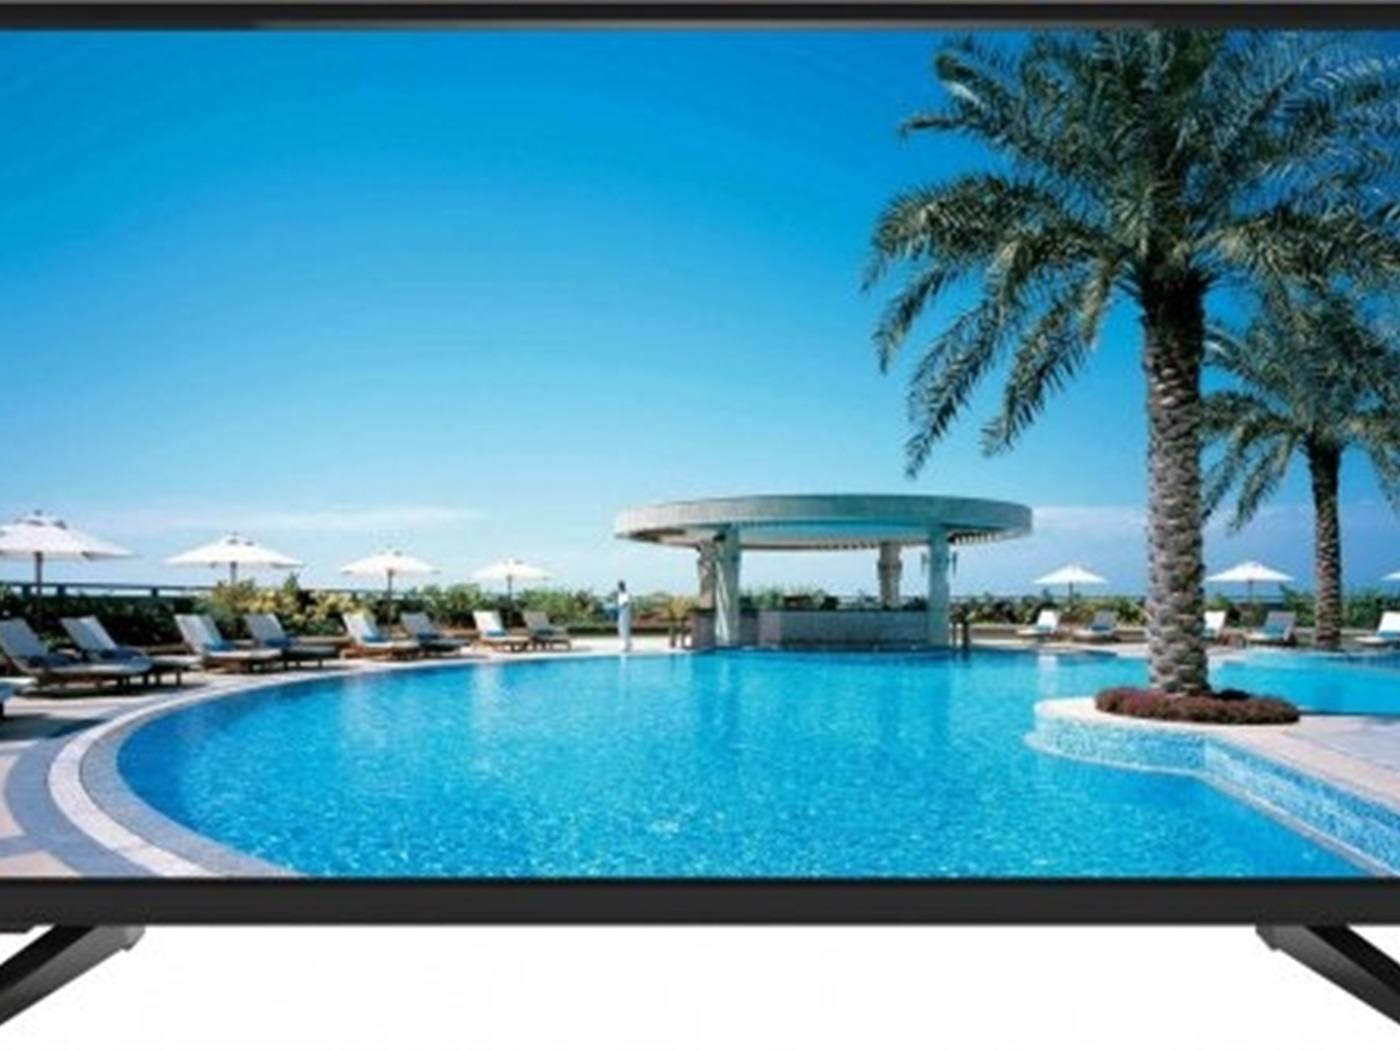 "ELIT LED TV 32"" L-32D17ST2 DVBT2/S2 h.265"